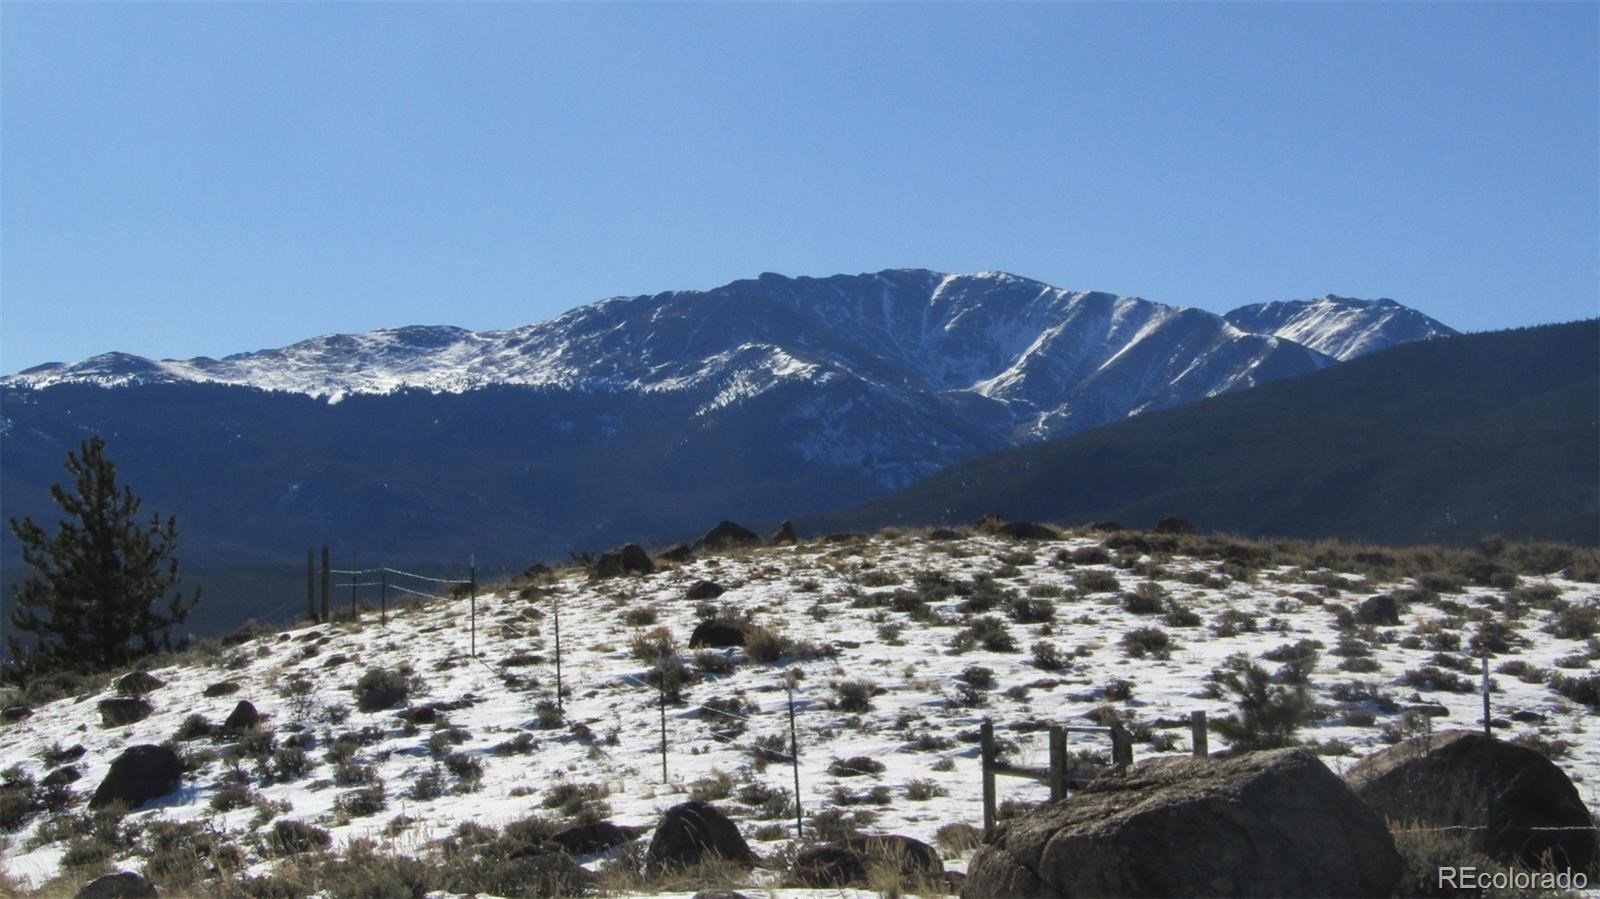 MLS# 6807834 - 1 - 2250 Asteroid Placer , Twin Lakes, CO 81251